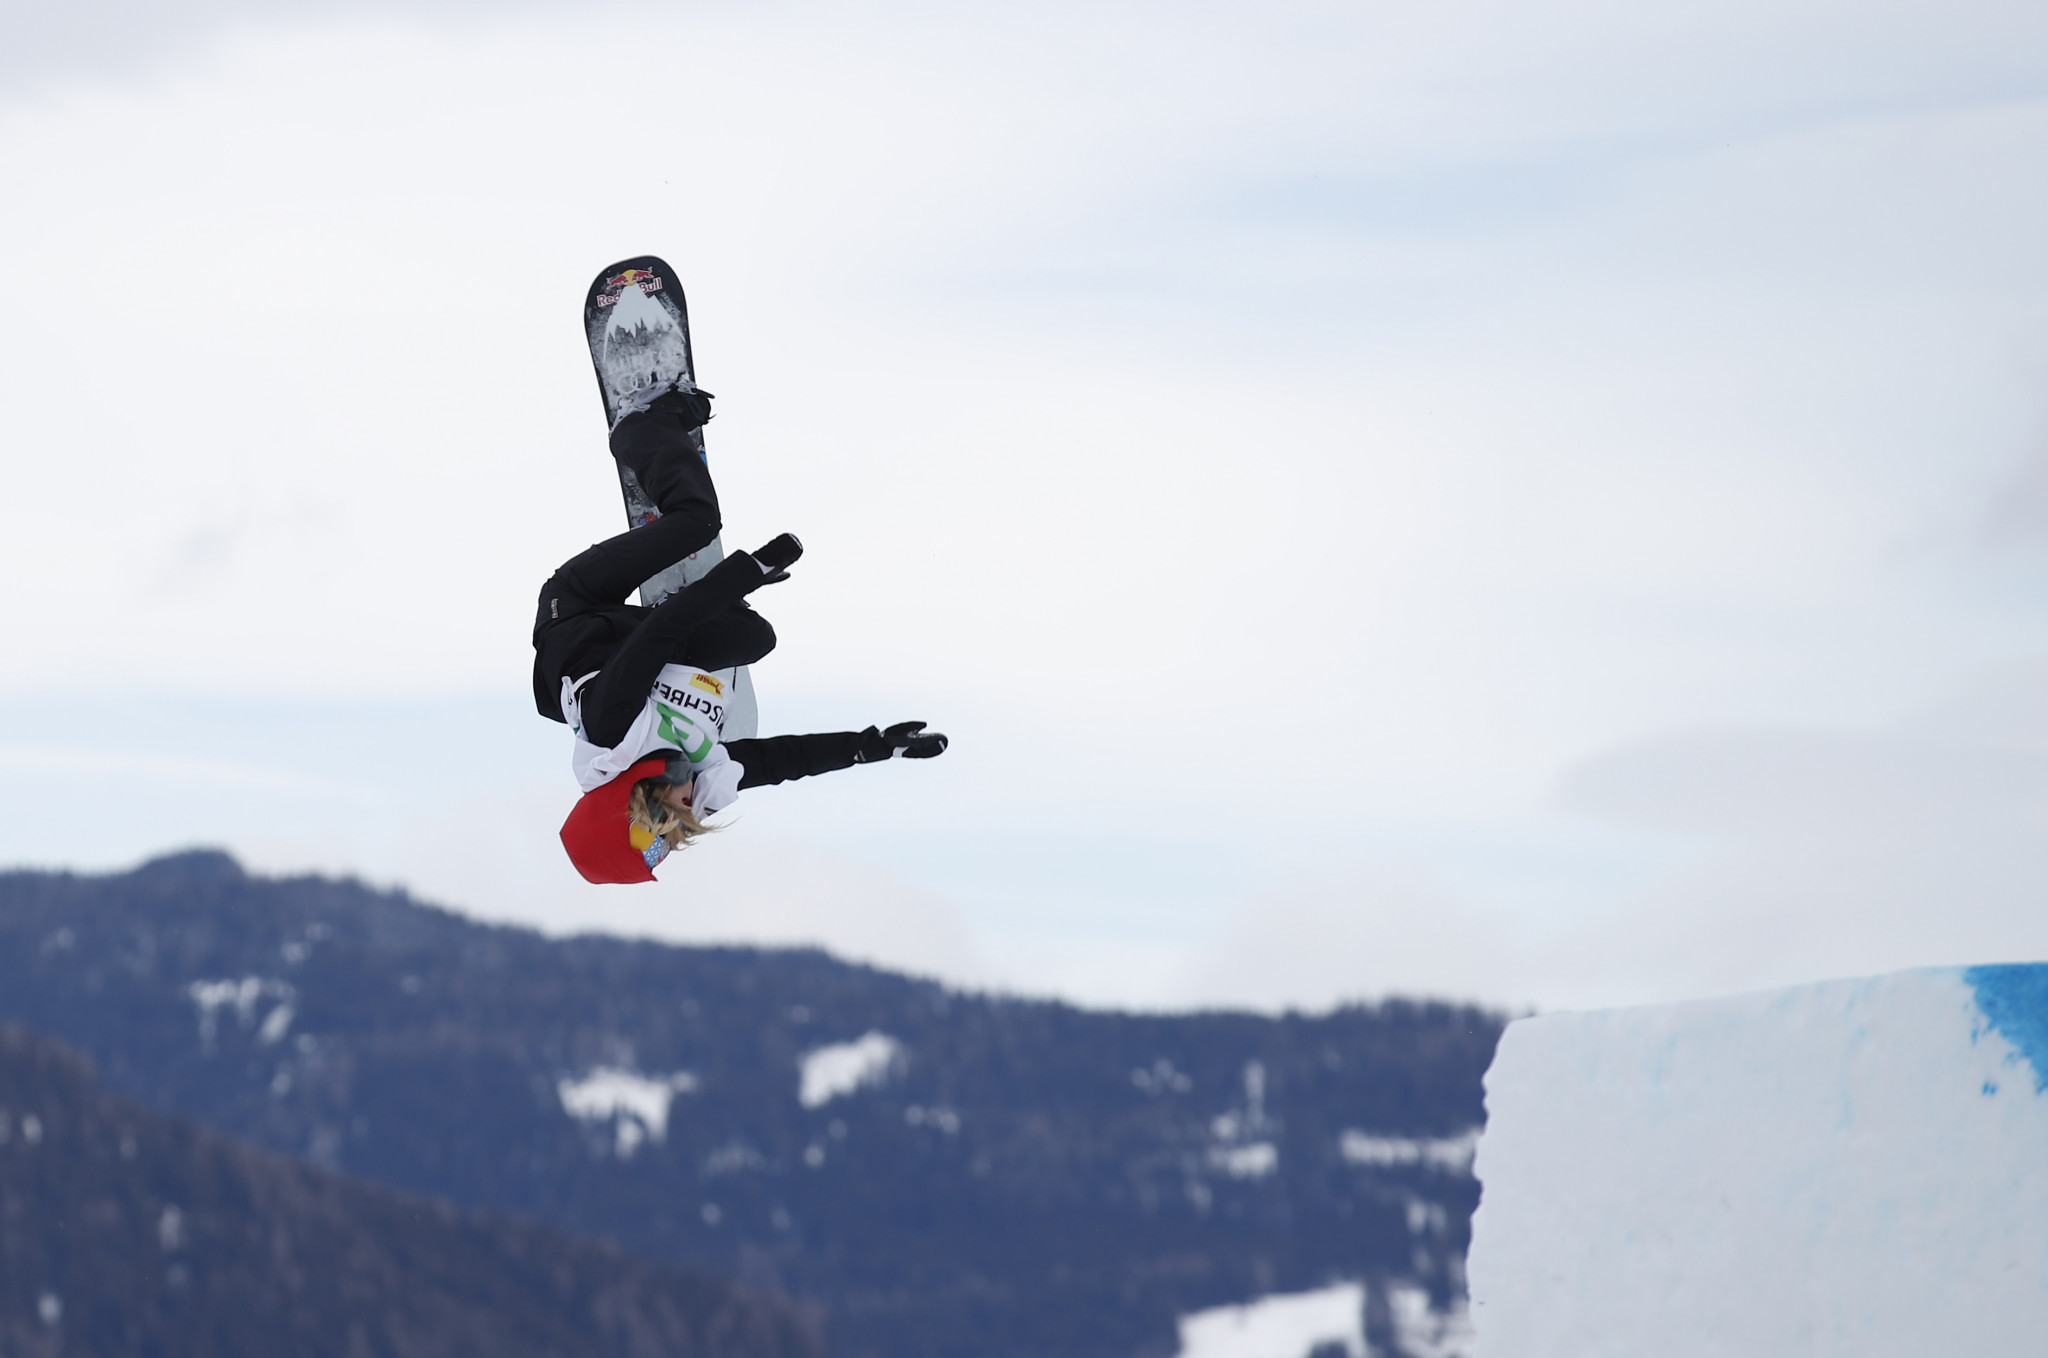 Austria's Anna Gasser is one of a number of Olympic champions competing in the Winter X Games in Aspen ©Getty Images